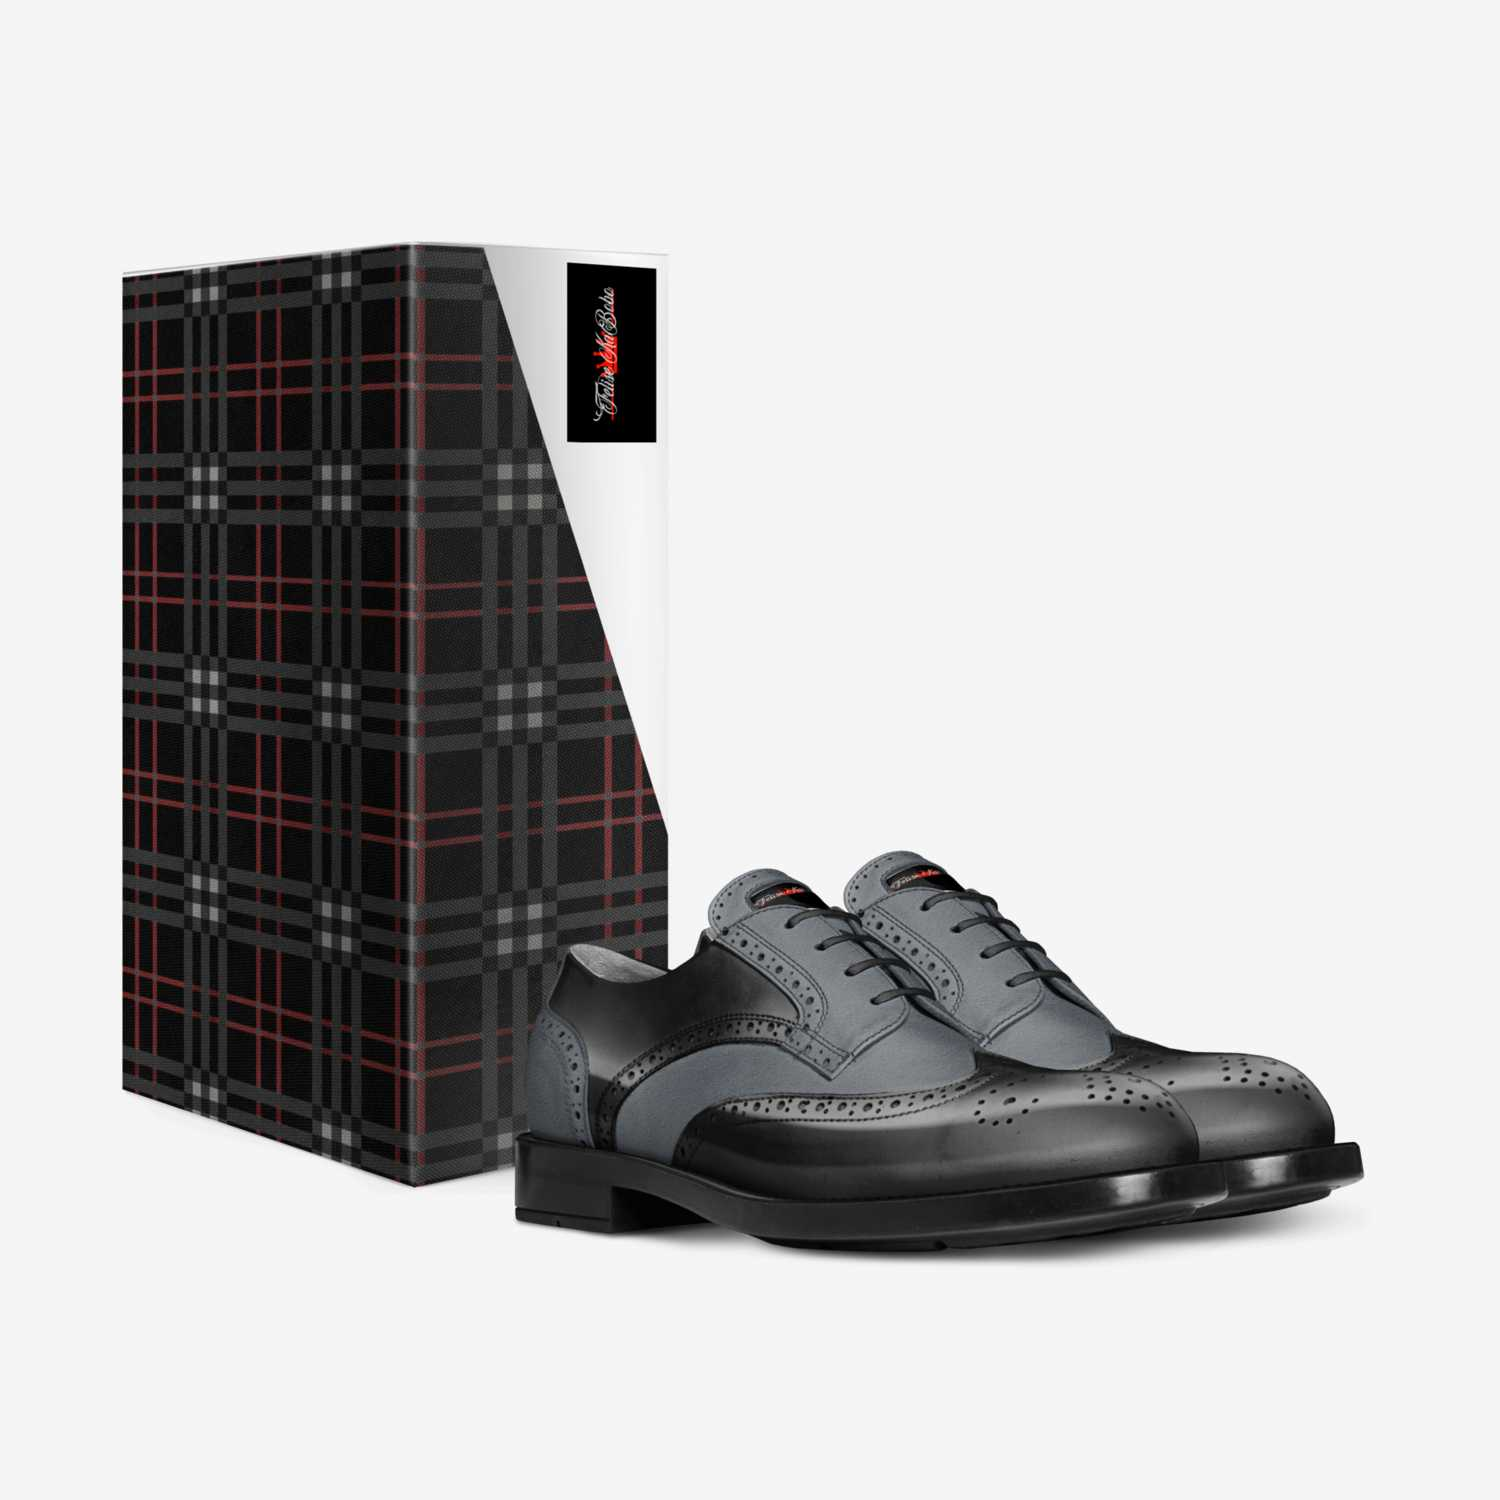 Felise KaBobo custom made in Italy shoes by Shamsud-din King | Box view